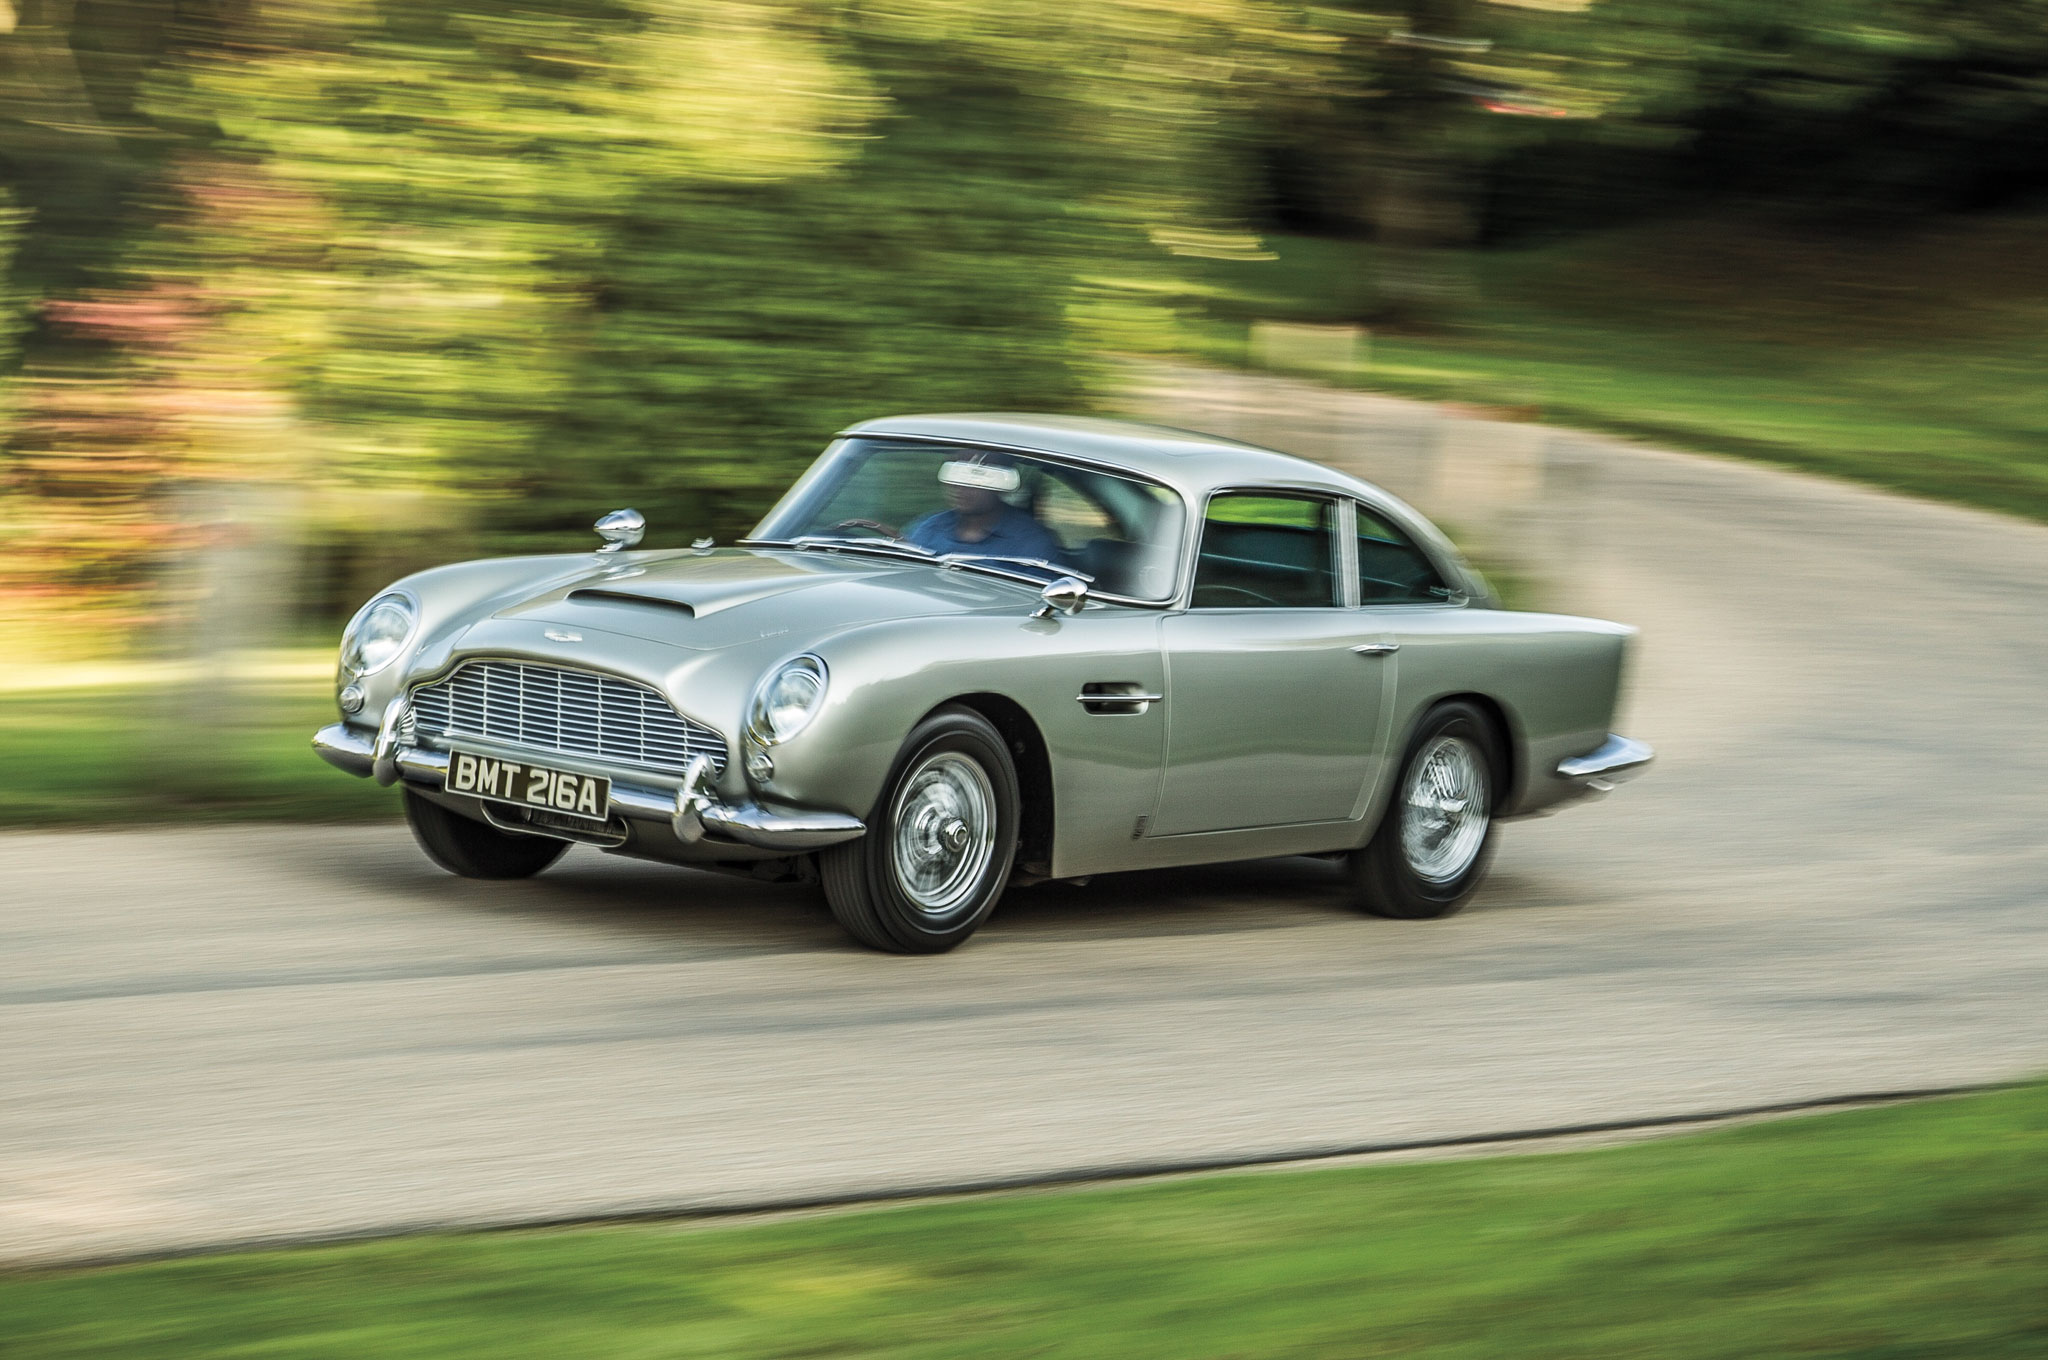 The DB5 started it all in '64. Even after a slew of other Astons, it's the one that makes us swoon like a Bond girl. It's just so damn attractive, from its Silver Birch paint to its dapper interior.